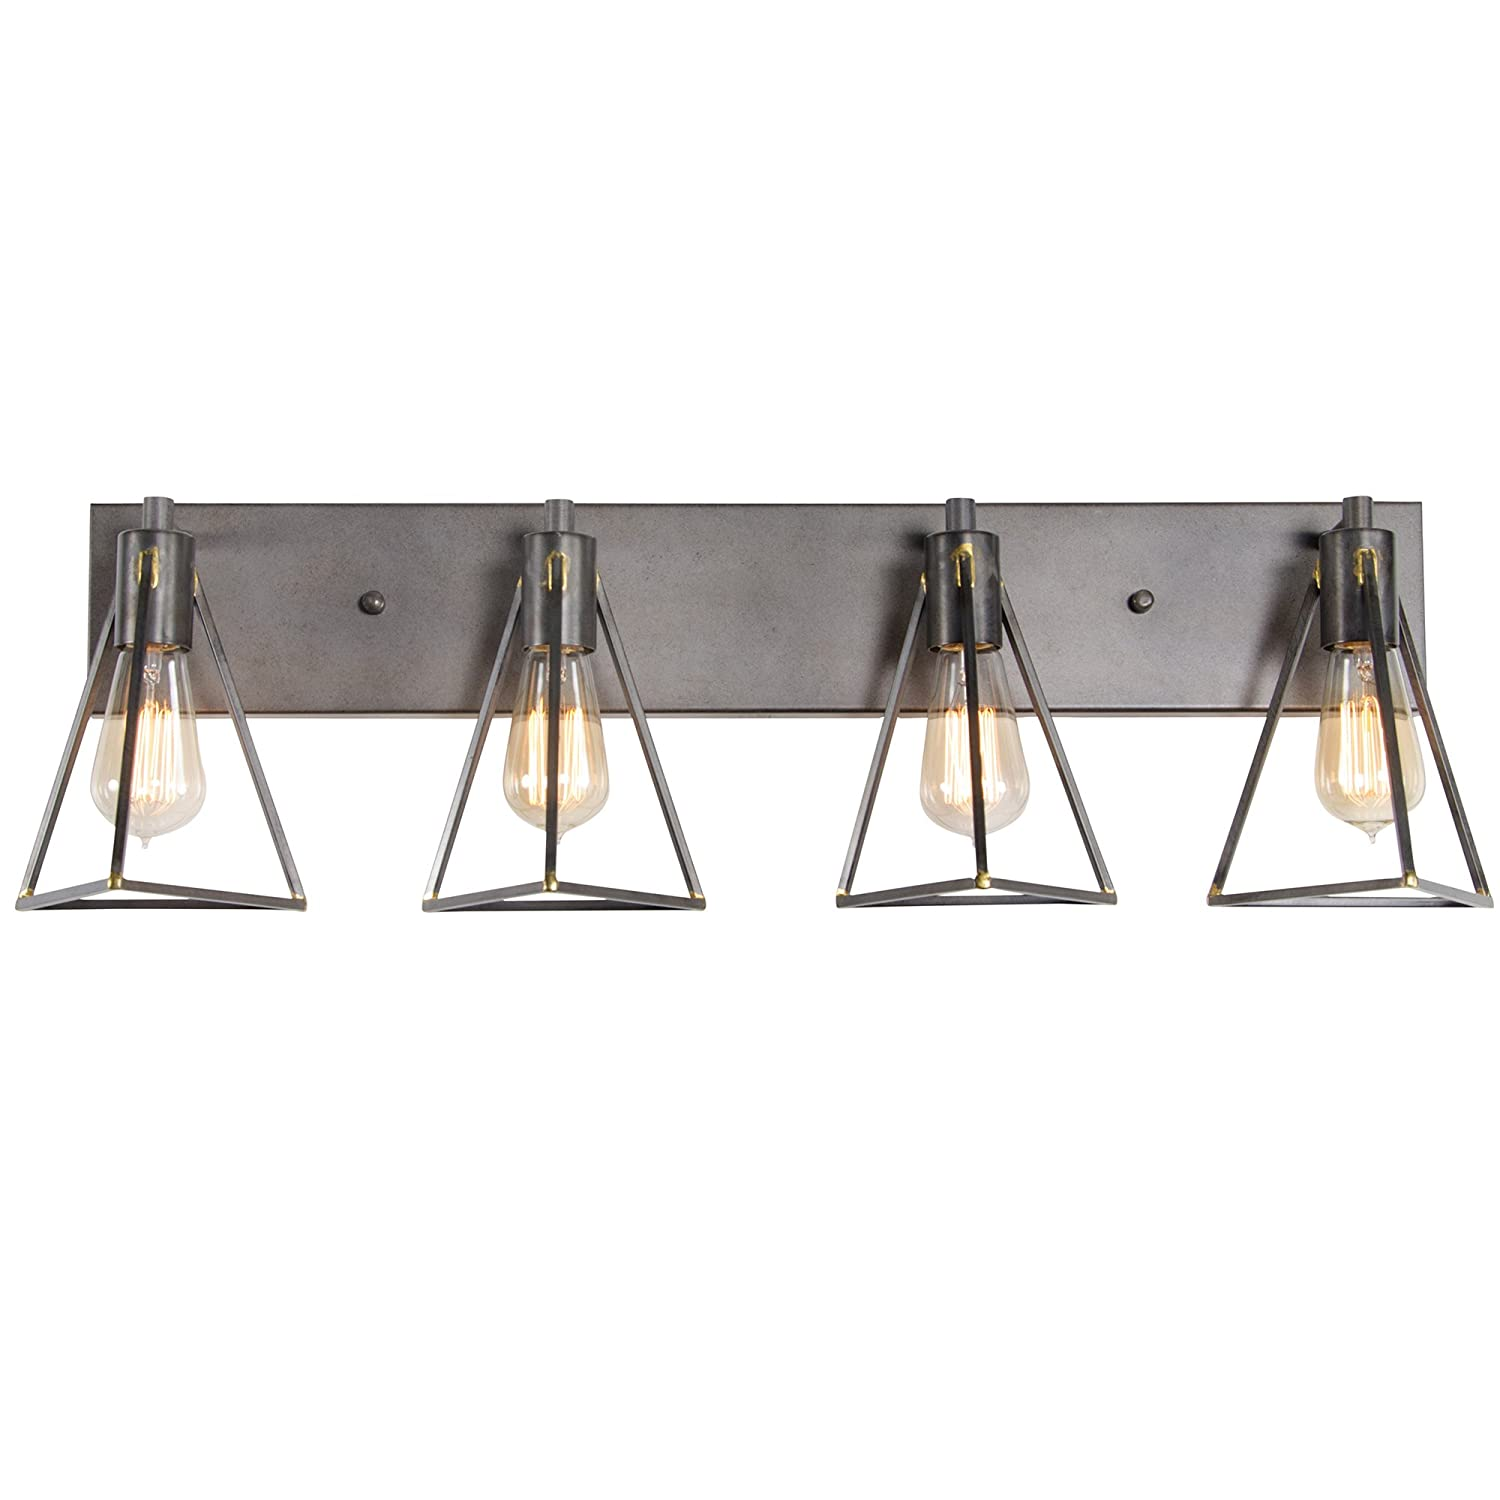 Uttermost 22801 Vetraio 3-Light Vantity Strip 7 x 26 x 9 , 9.0 L x 26.0 W x 7.0 D, Oil-Rubbed Bronze